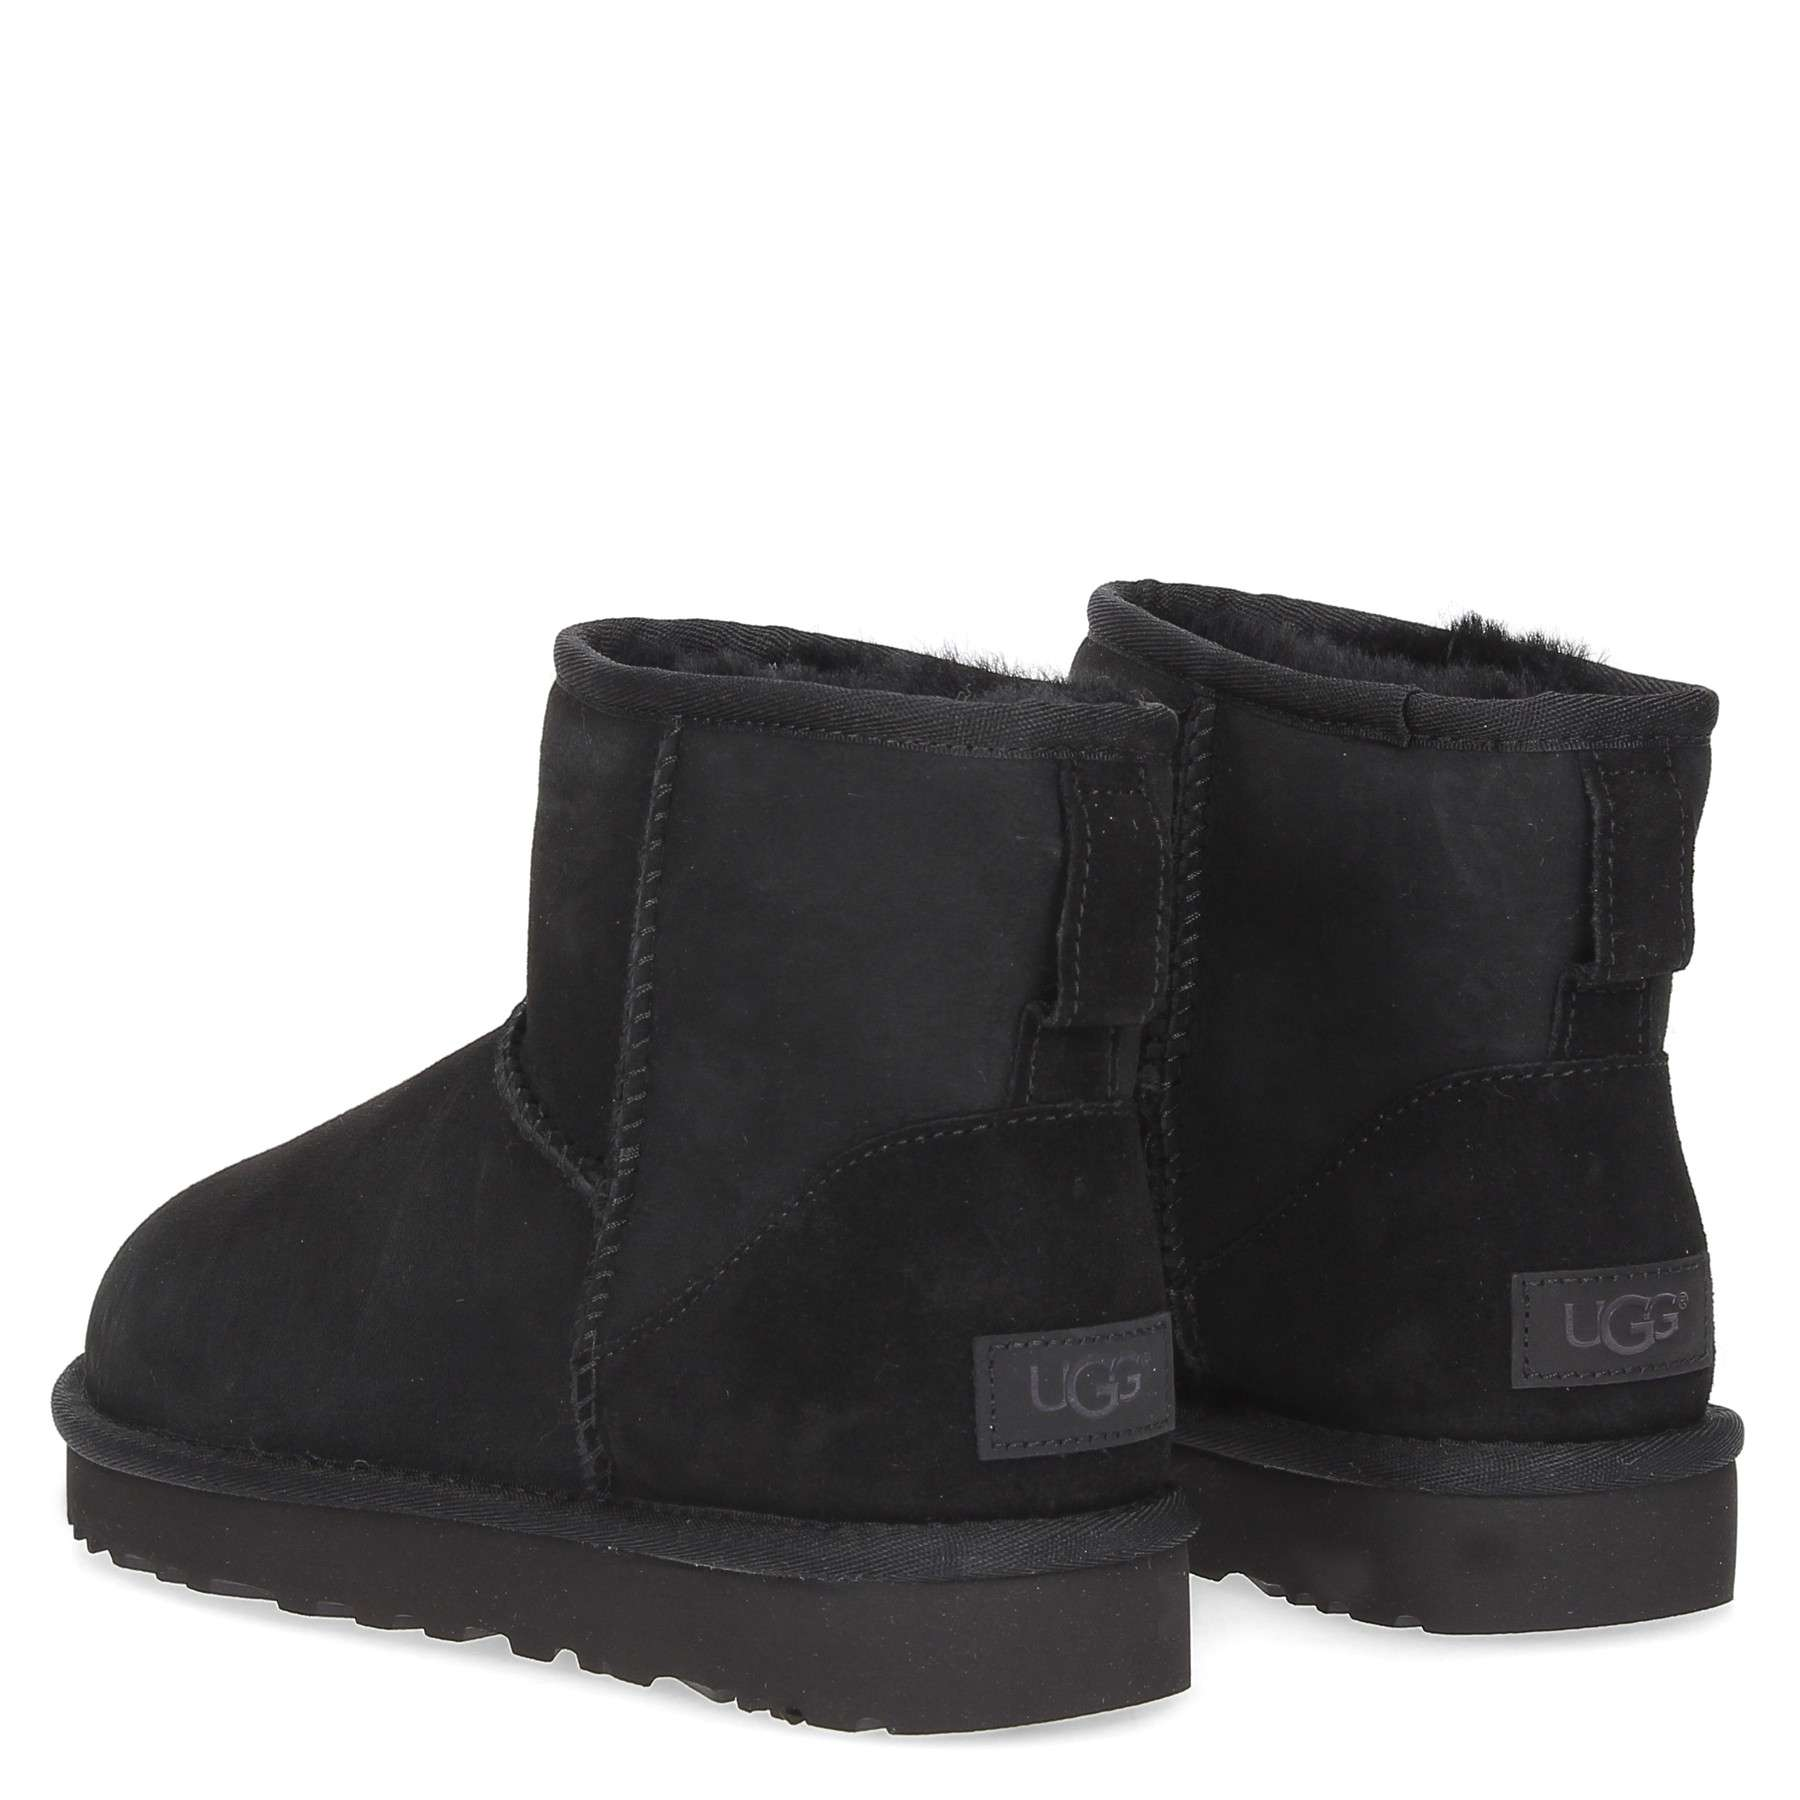 https://www.parmax.com/media/catalog/product/a/i/AI-outlet_parmax.-stivaletto-donna-Ugg-1016222-C_1.jpg